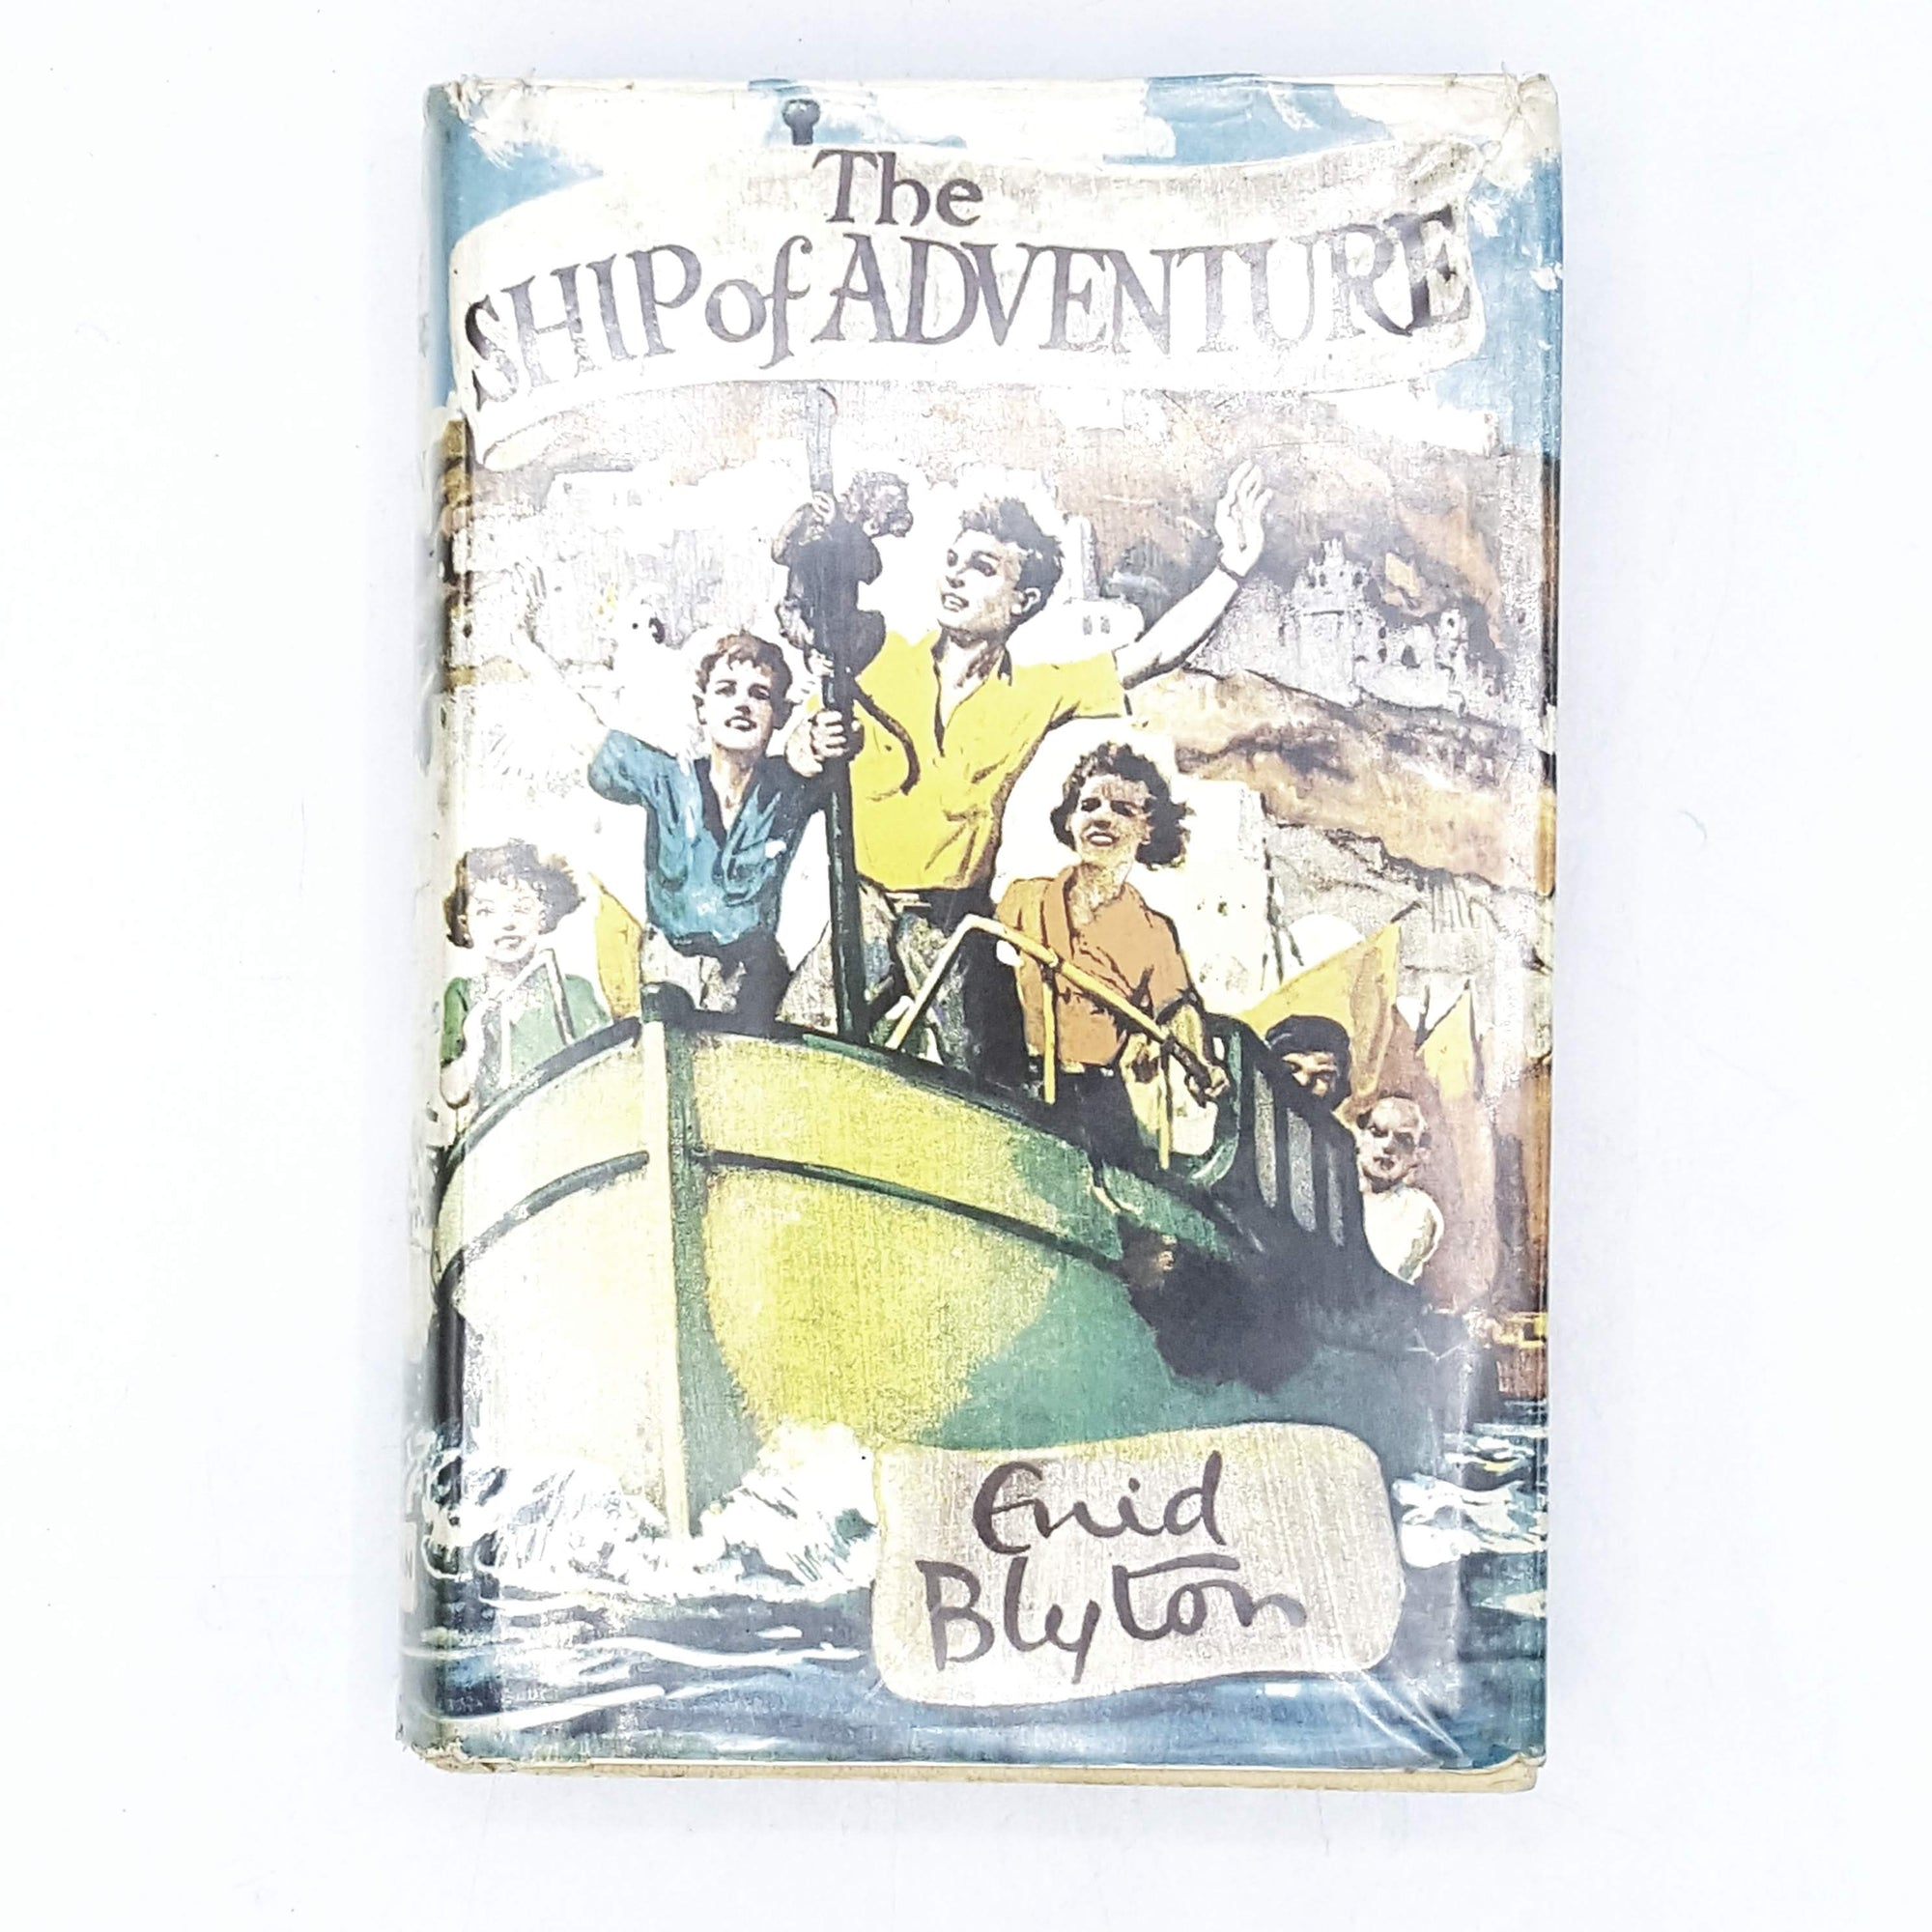 Enid Blyton's The Ship of Adventure 1966